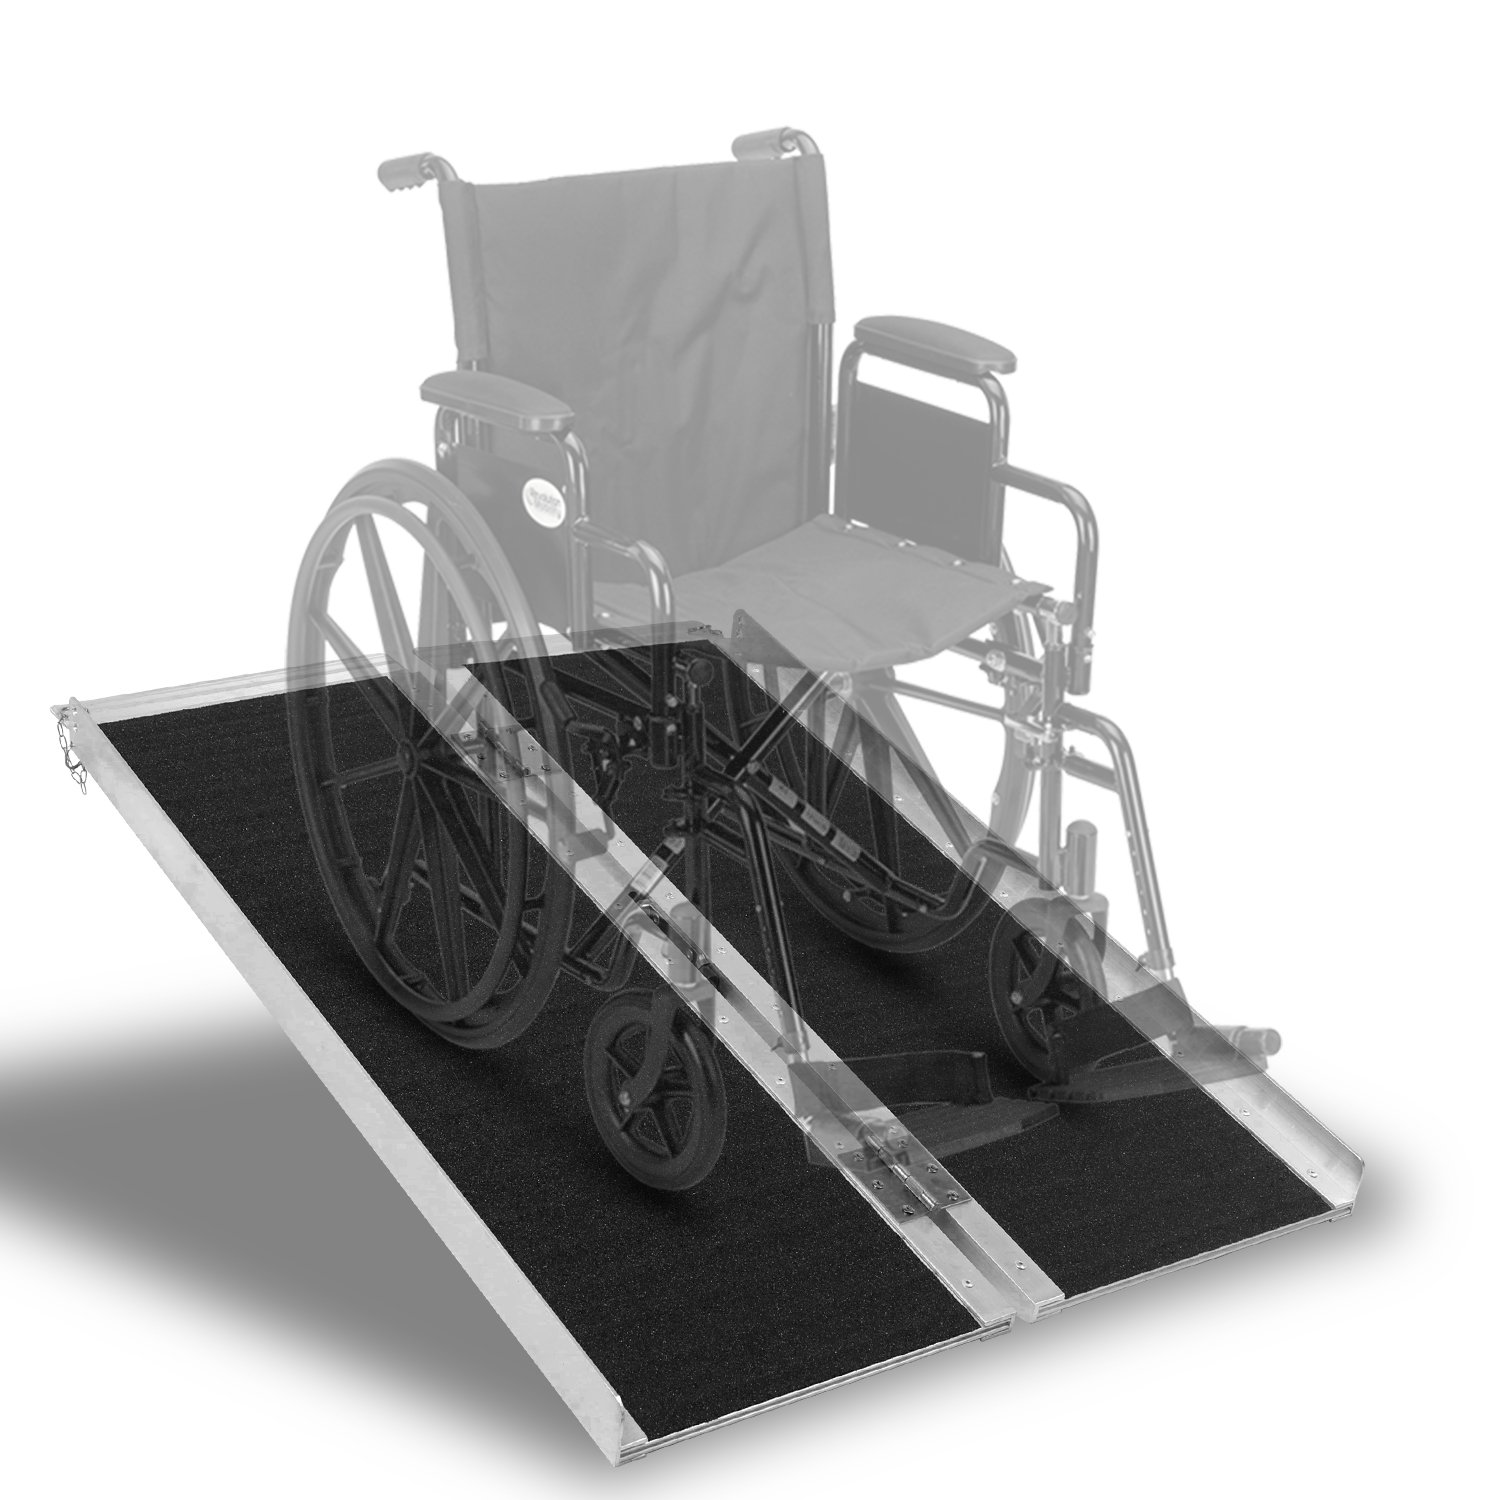 Portable Aluminum Wheelchair Ramp Foldable Separated Mobility Scooter Traction Ramp with Carrying Handle 3 Feet